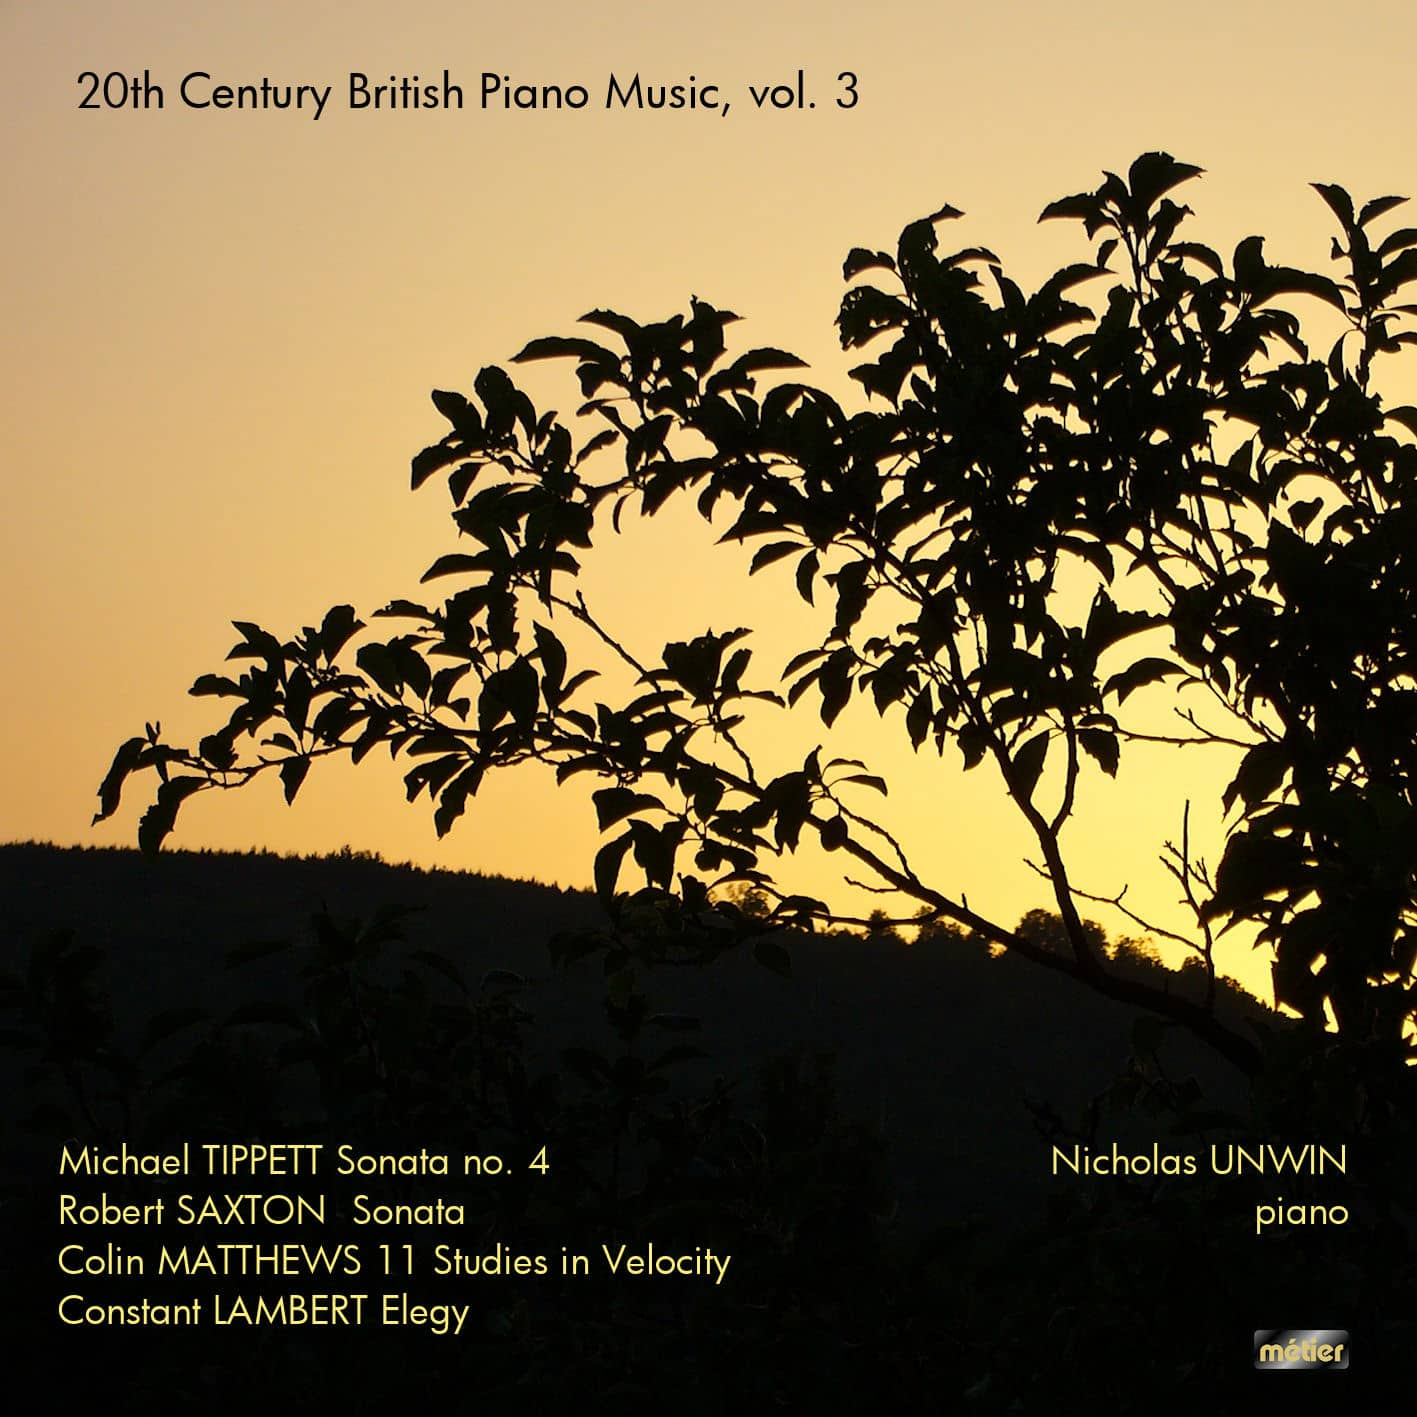 20th Century British Piano Music, vol. 3